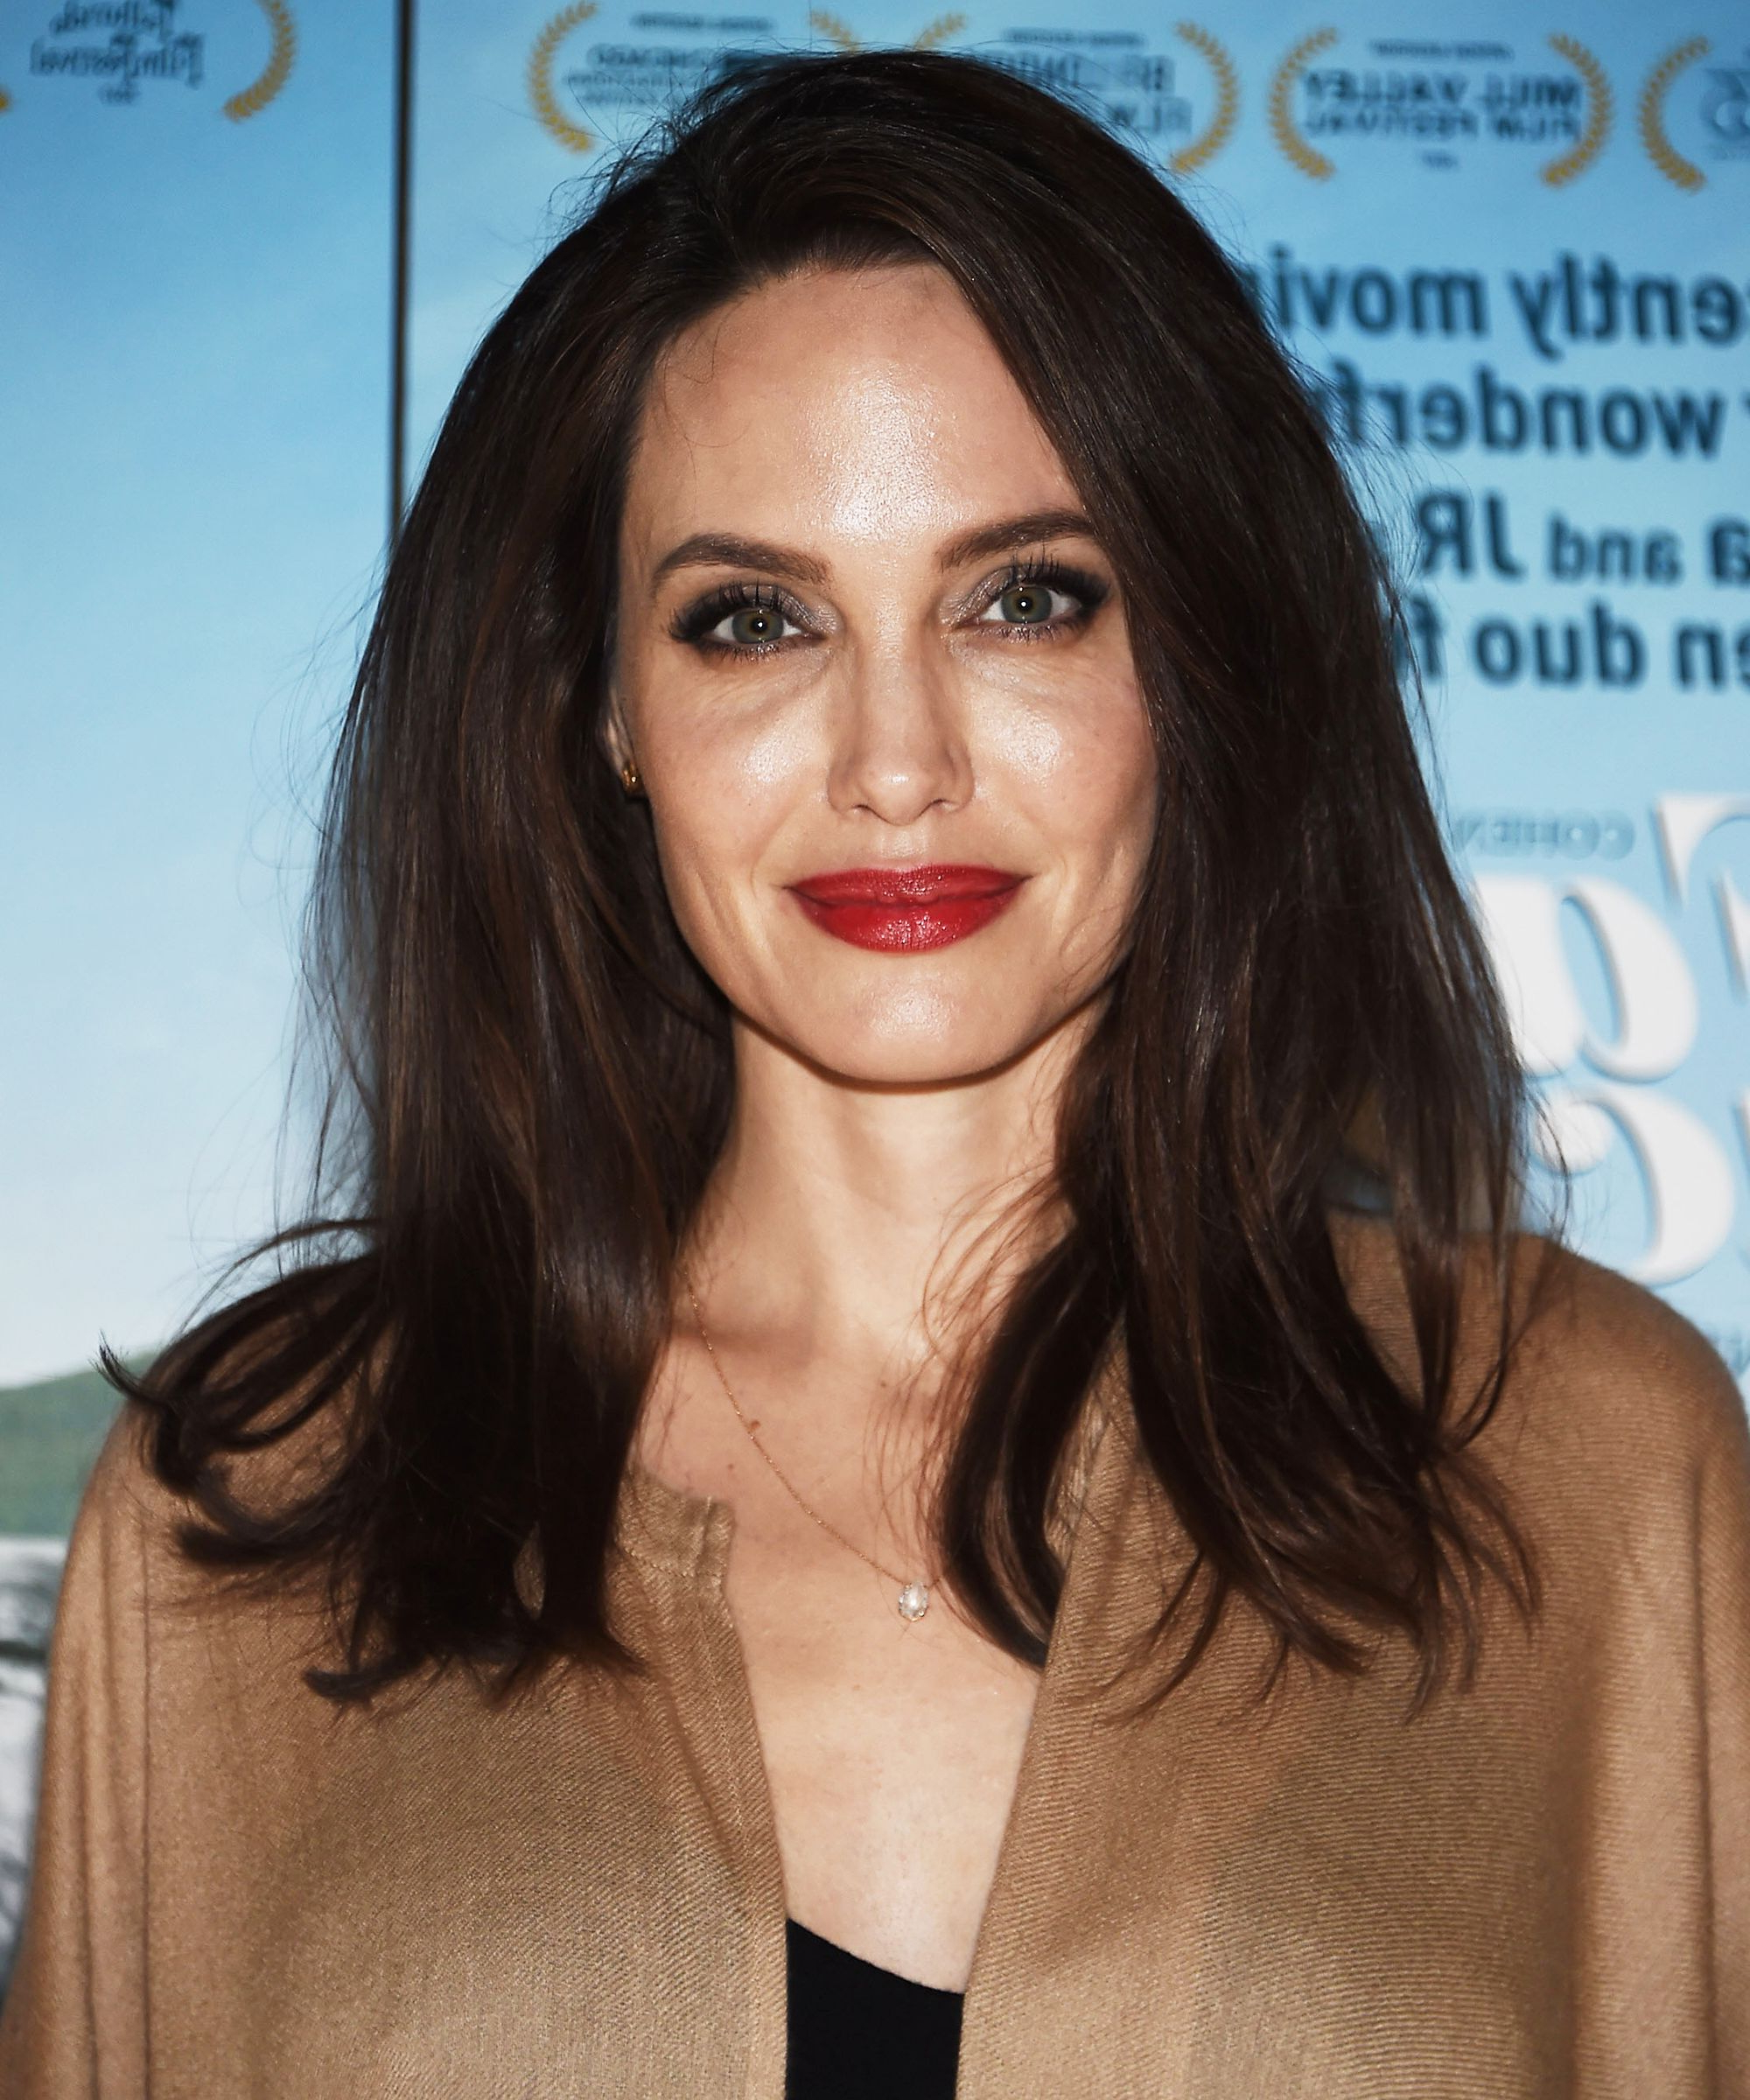 Angelina Jolie Haircut Blunt Trim Fall Trends With Angelina Jolie Short Hairstyles (View 24 of 25)